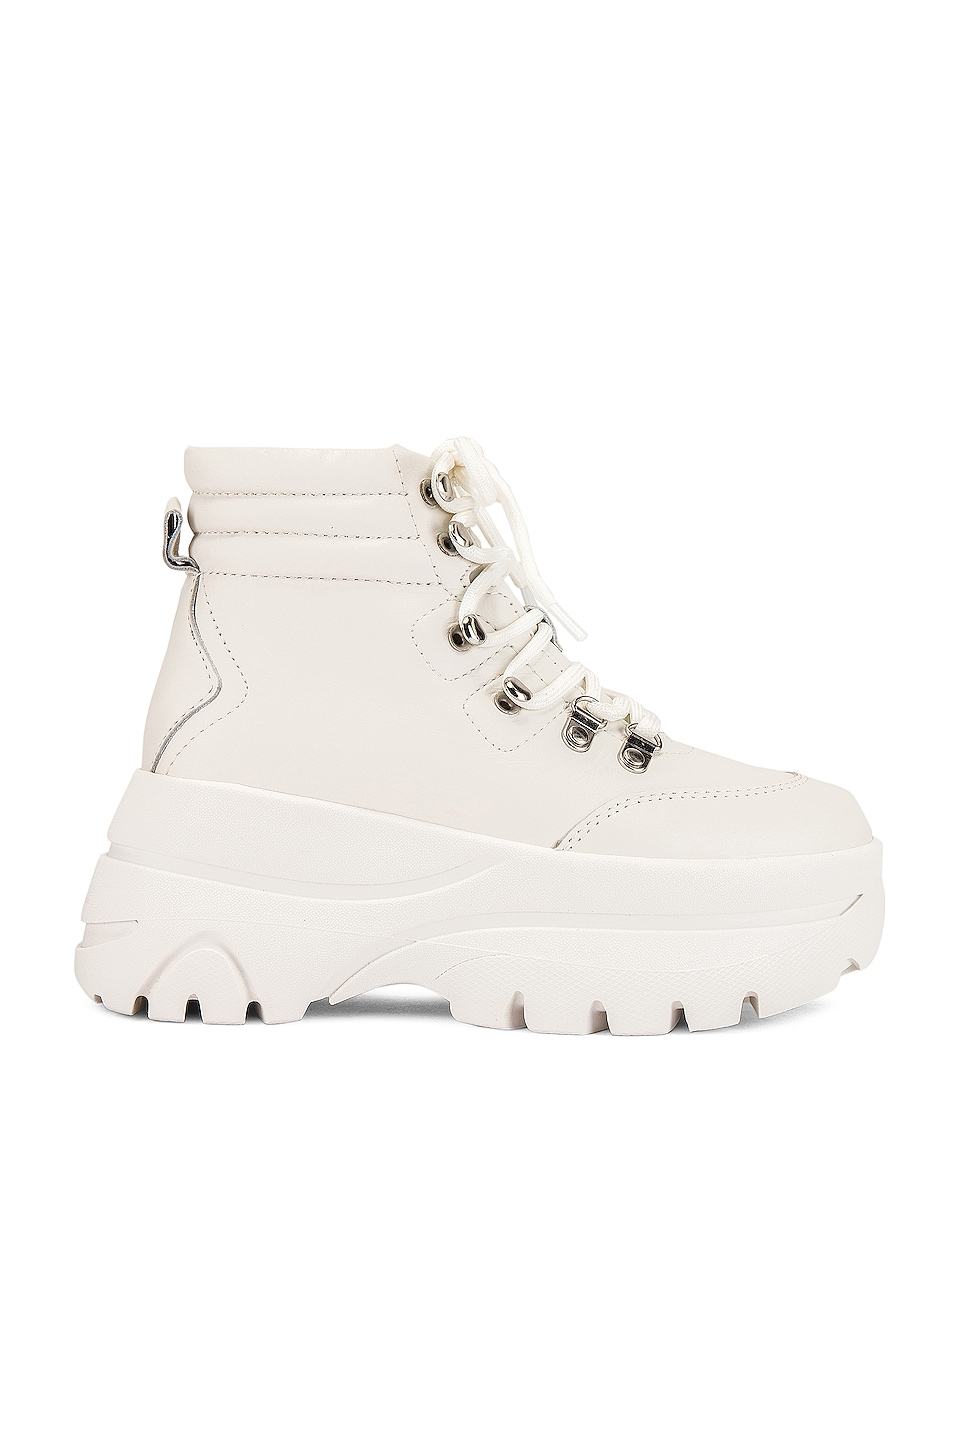 Steve Madden Husky Boot in White Leather